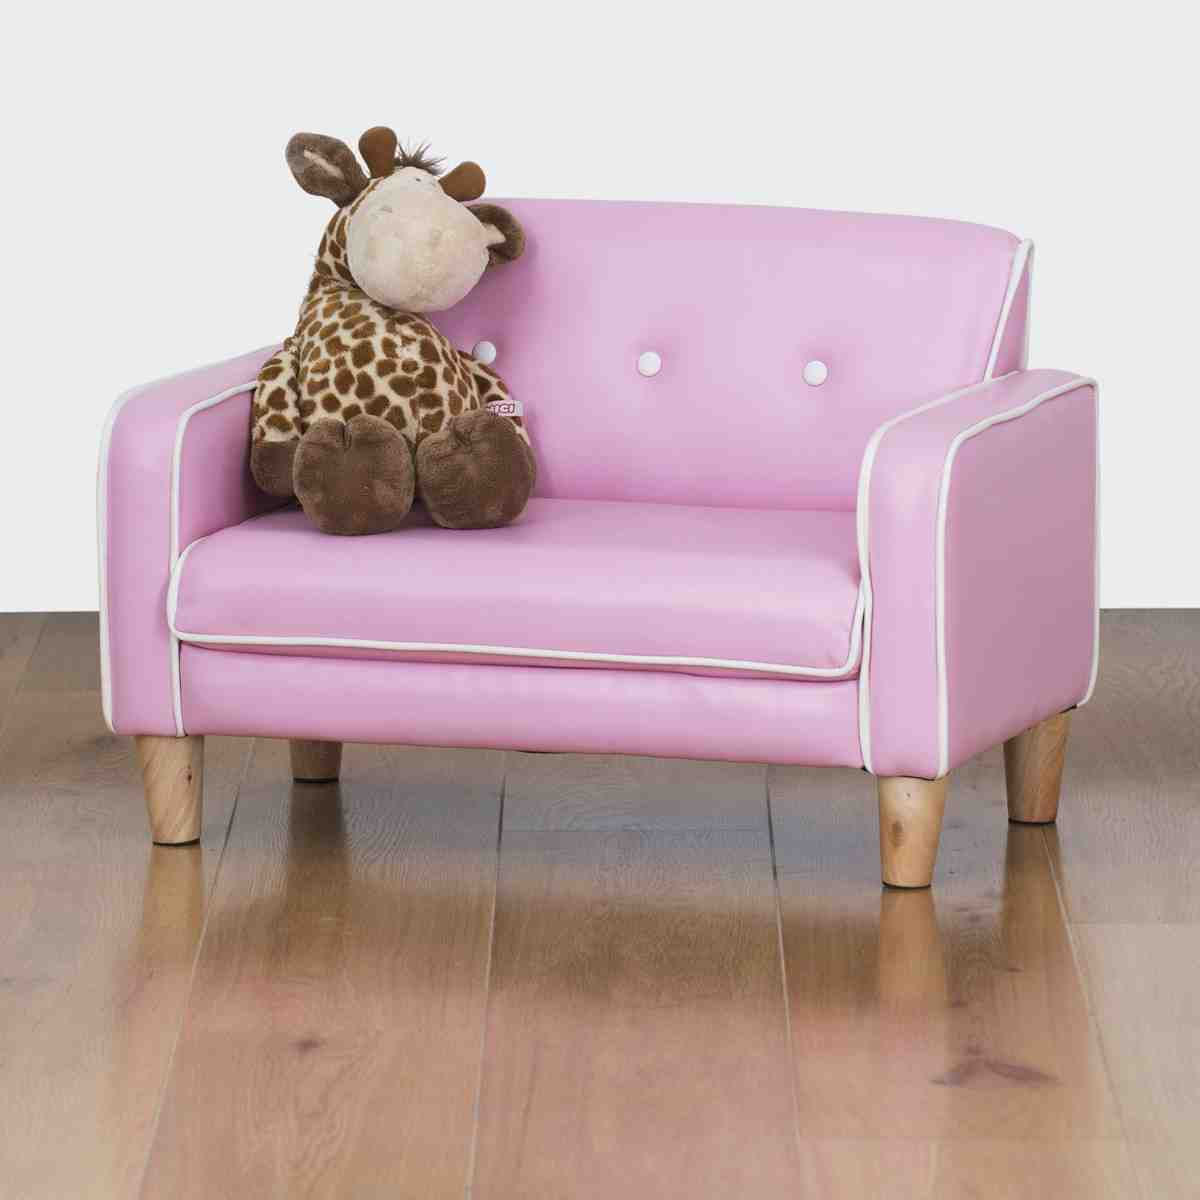 Kids Furniture Couch: Kid Sofa: Complete The Look